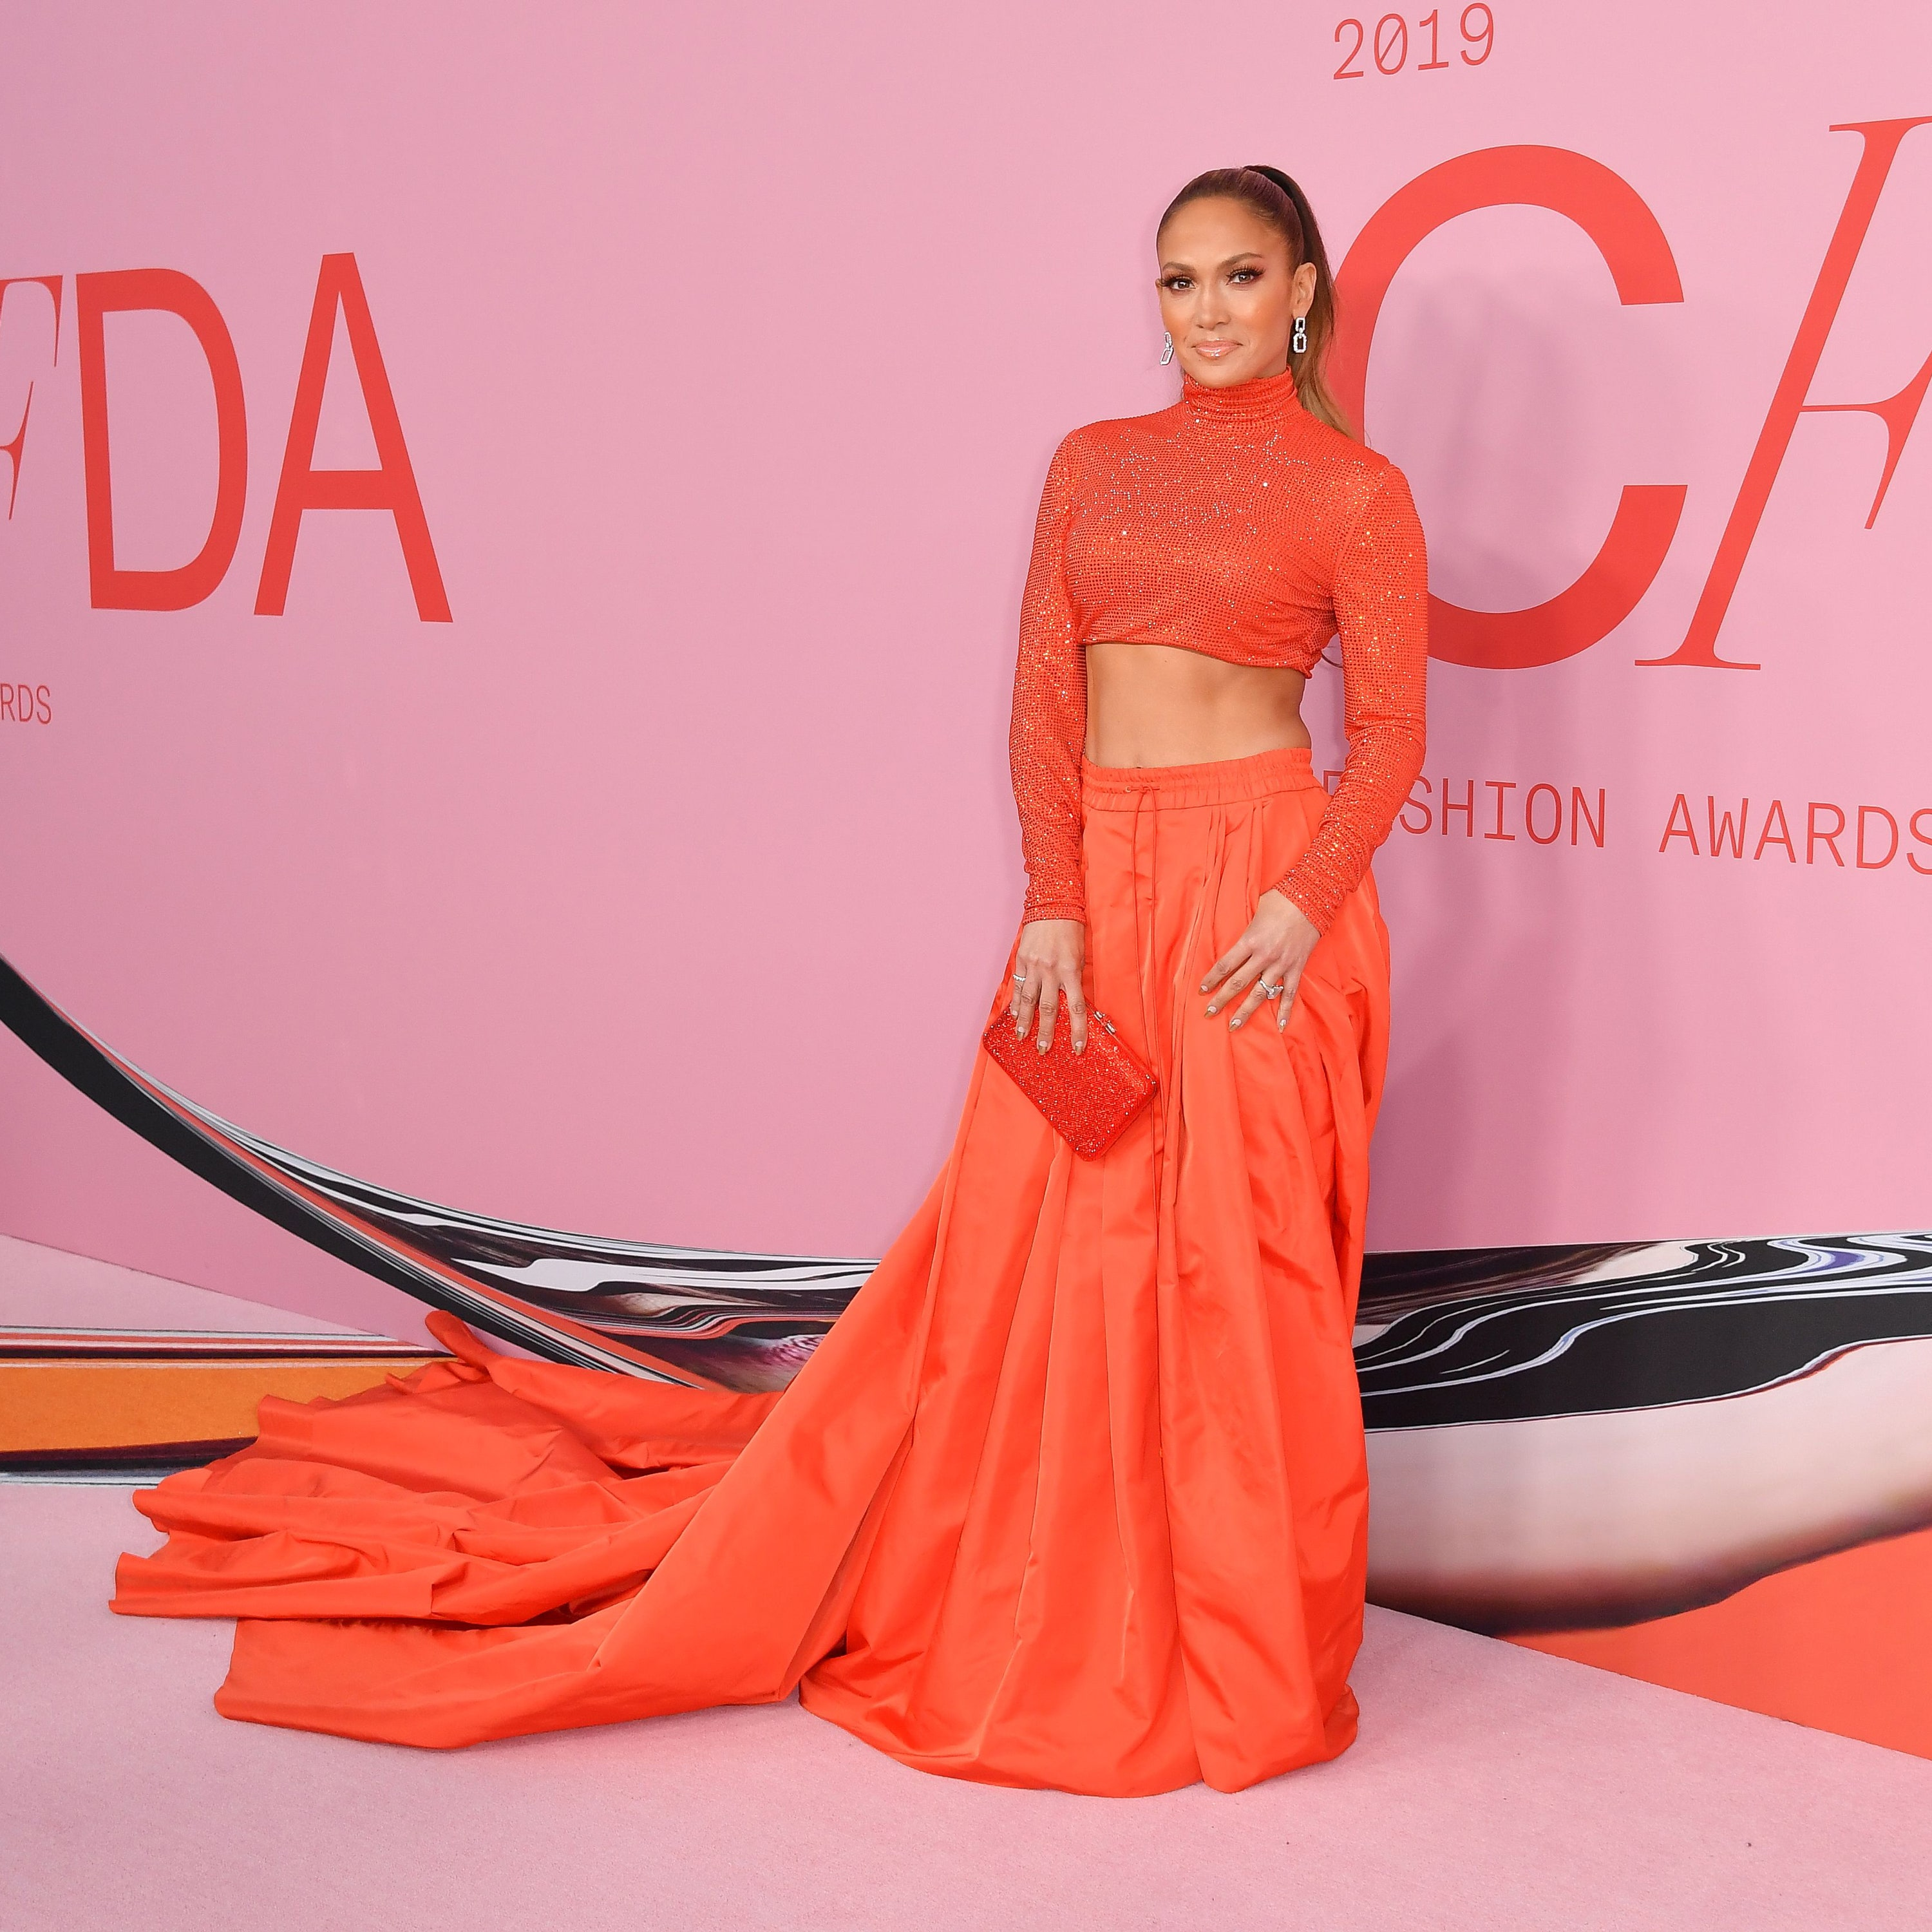 Jennifer Lopez Hottest Looks On Red Carpet That Made Her The Center Of All Attraction 3